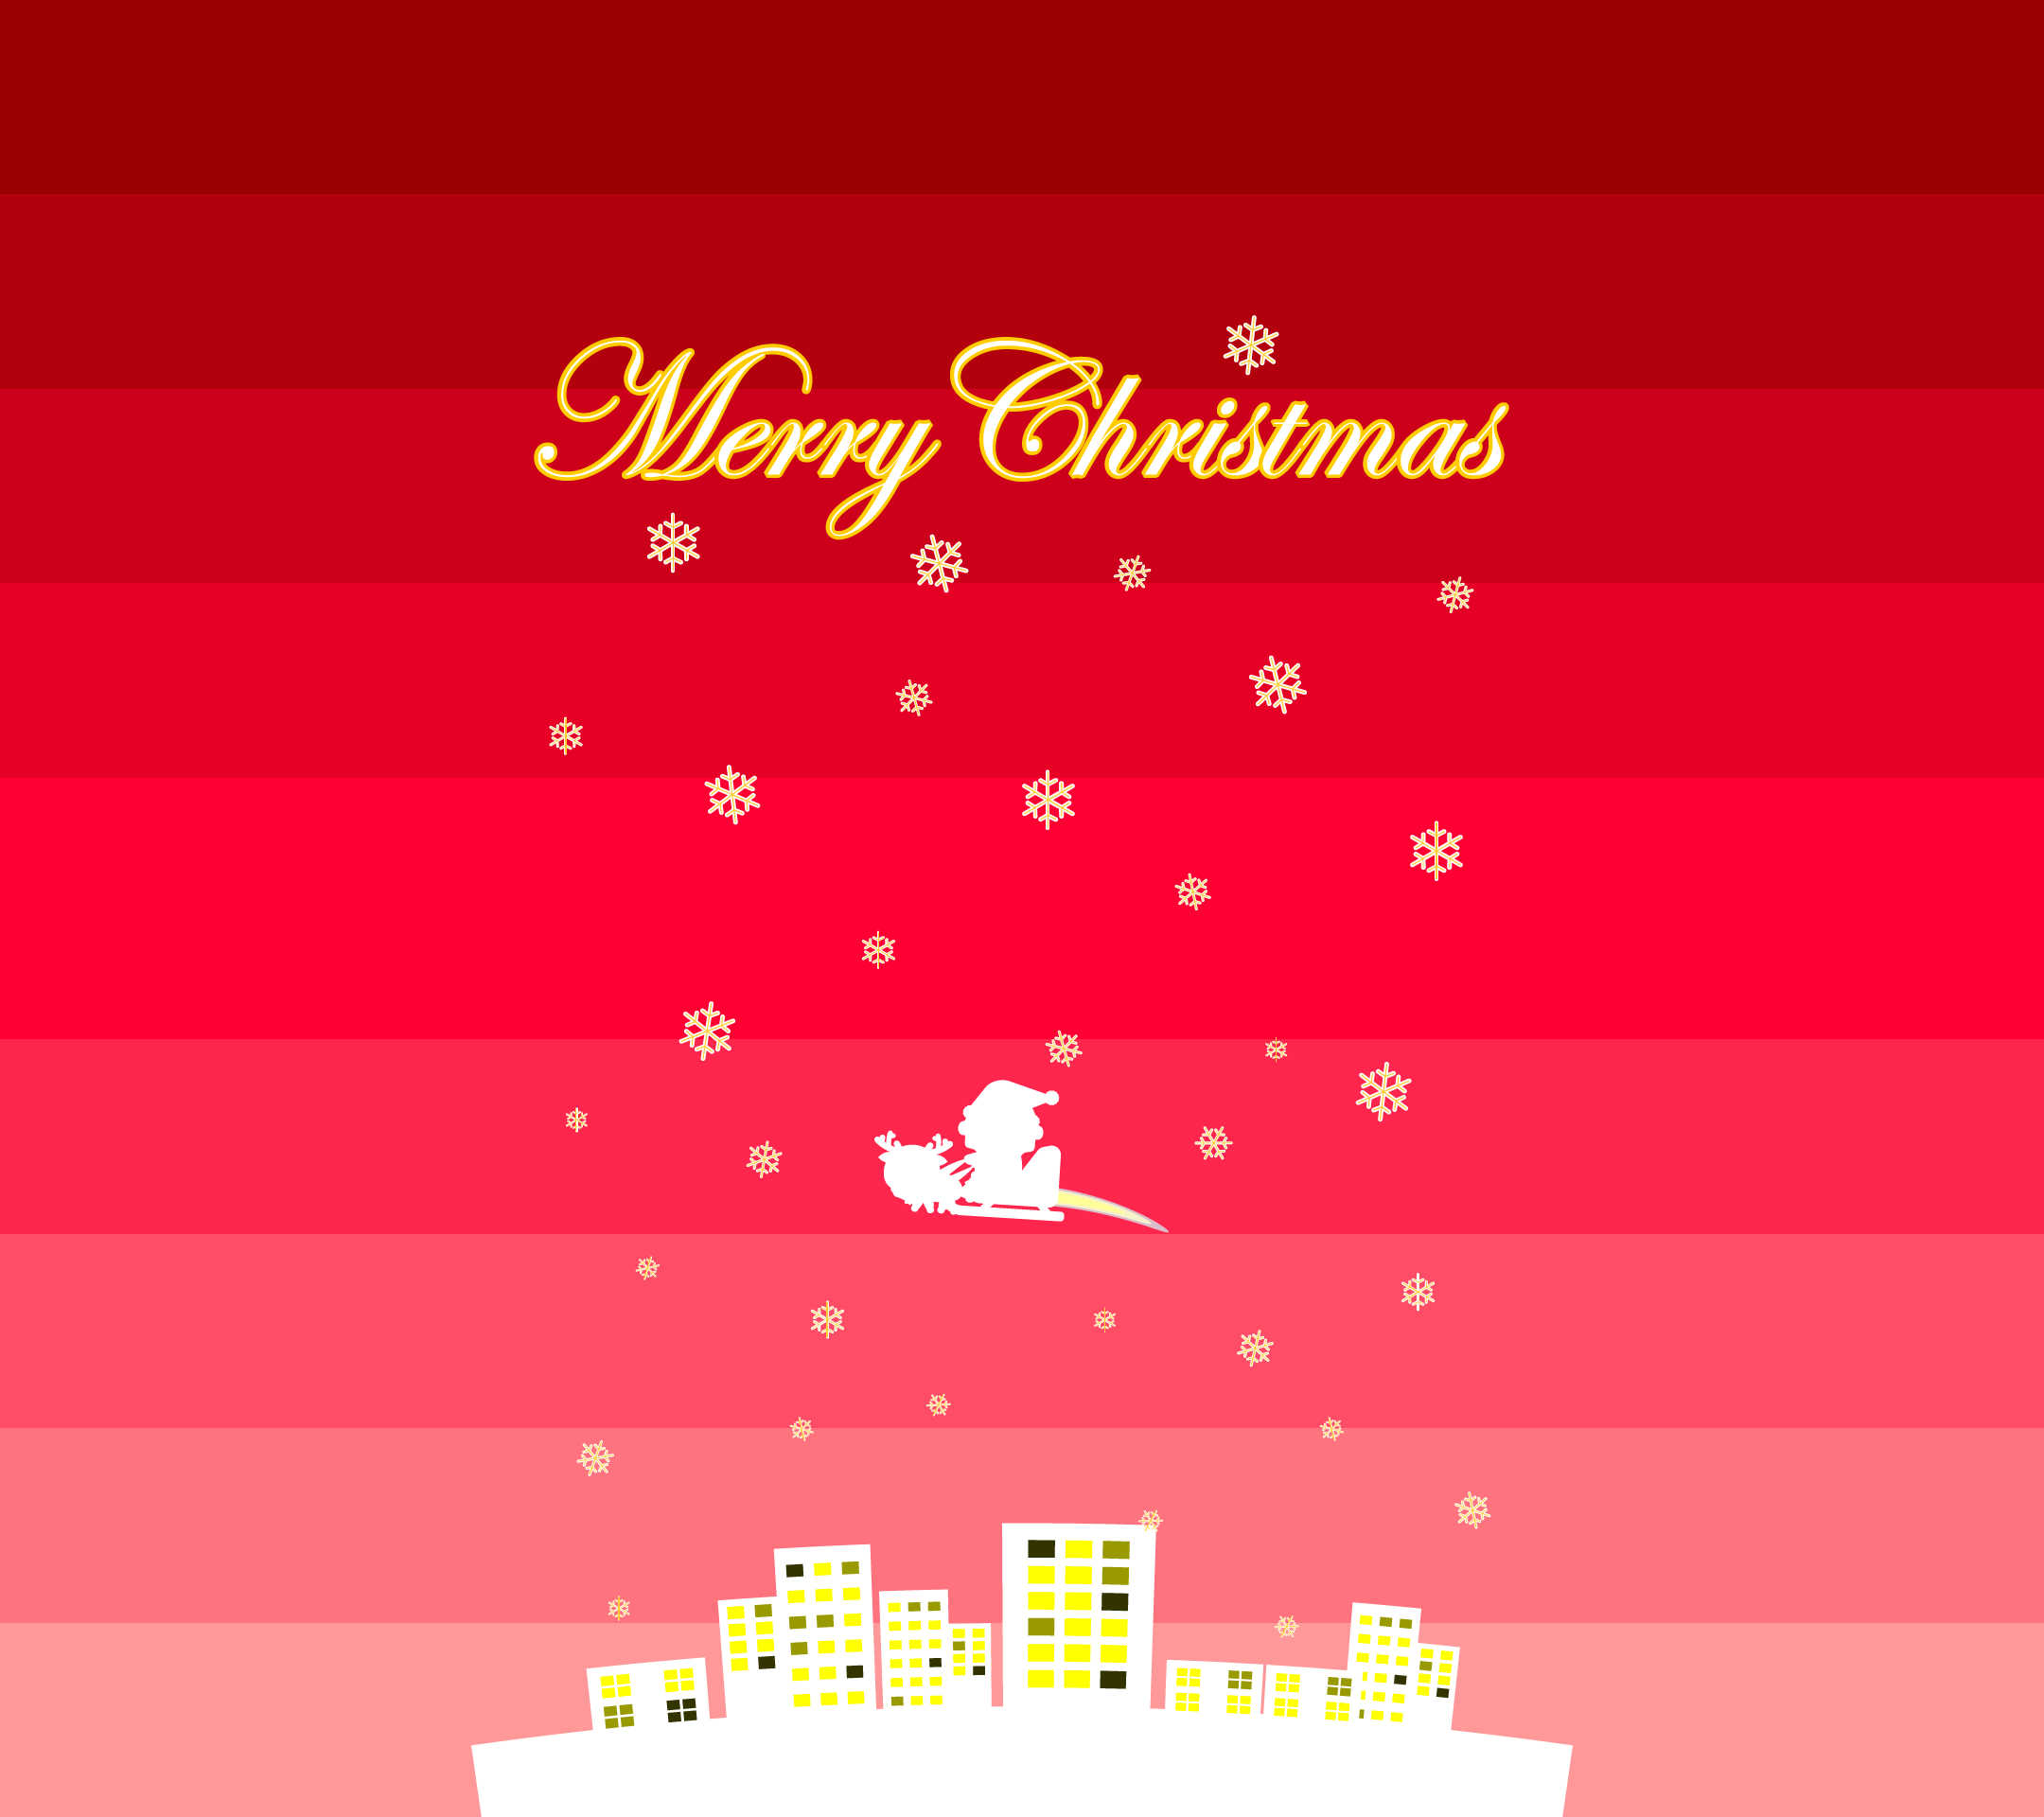 wallpaper6_christmas03w-android